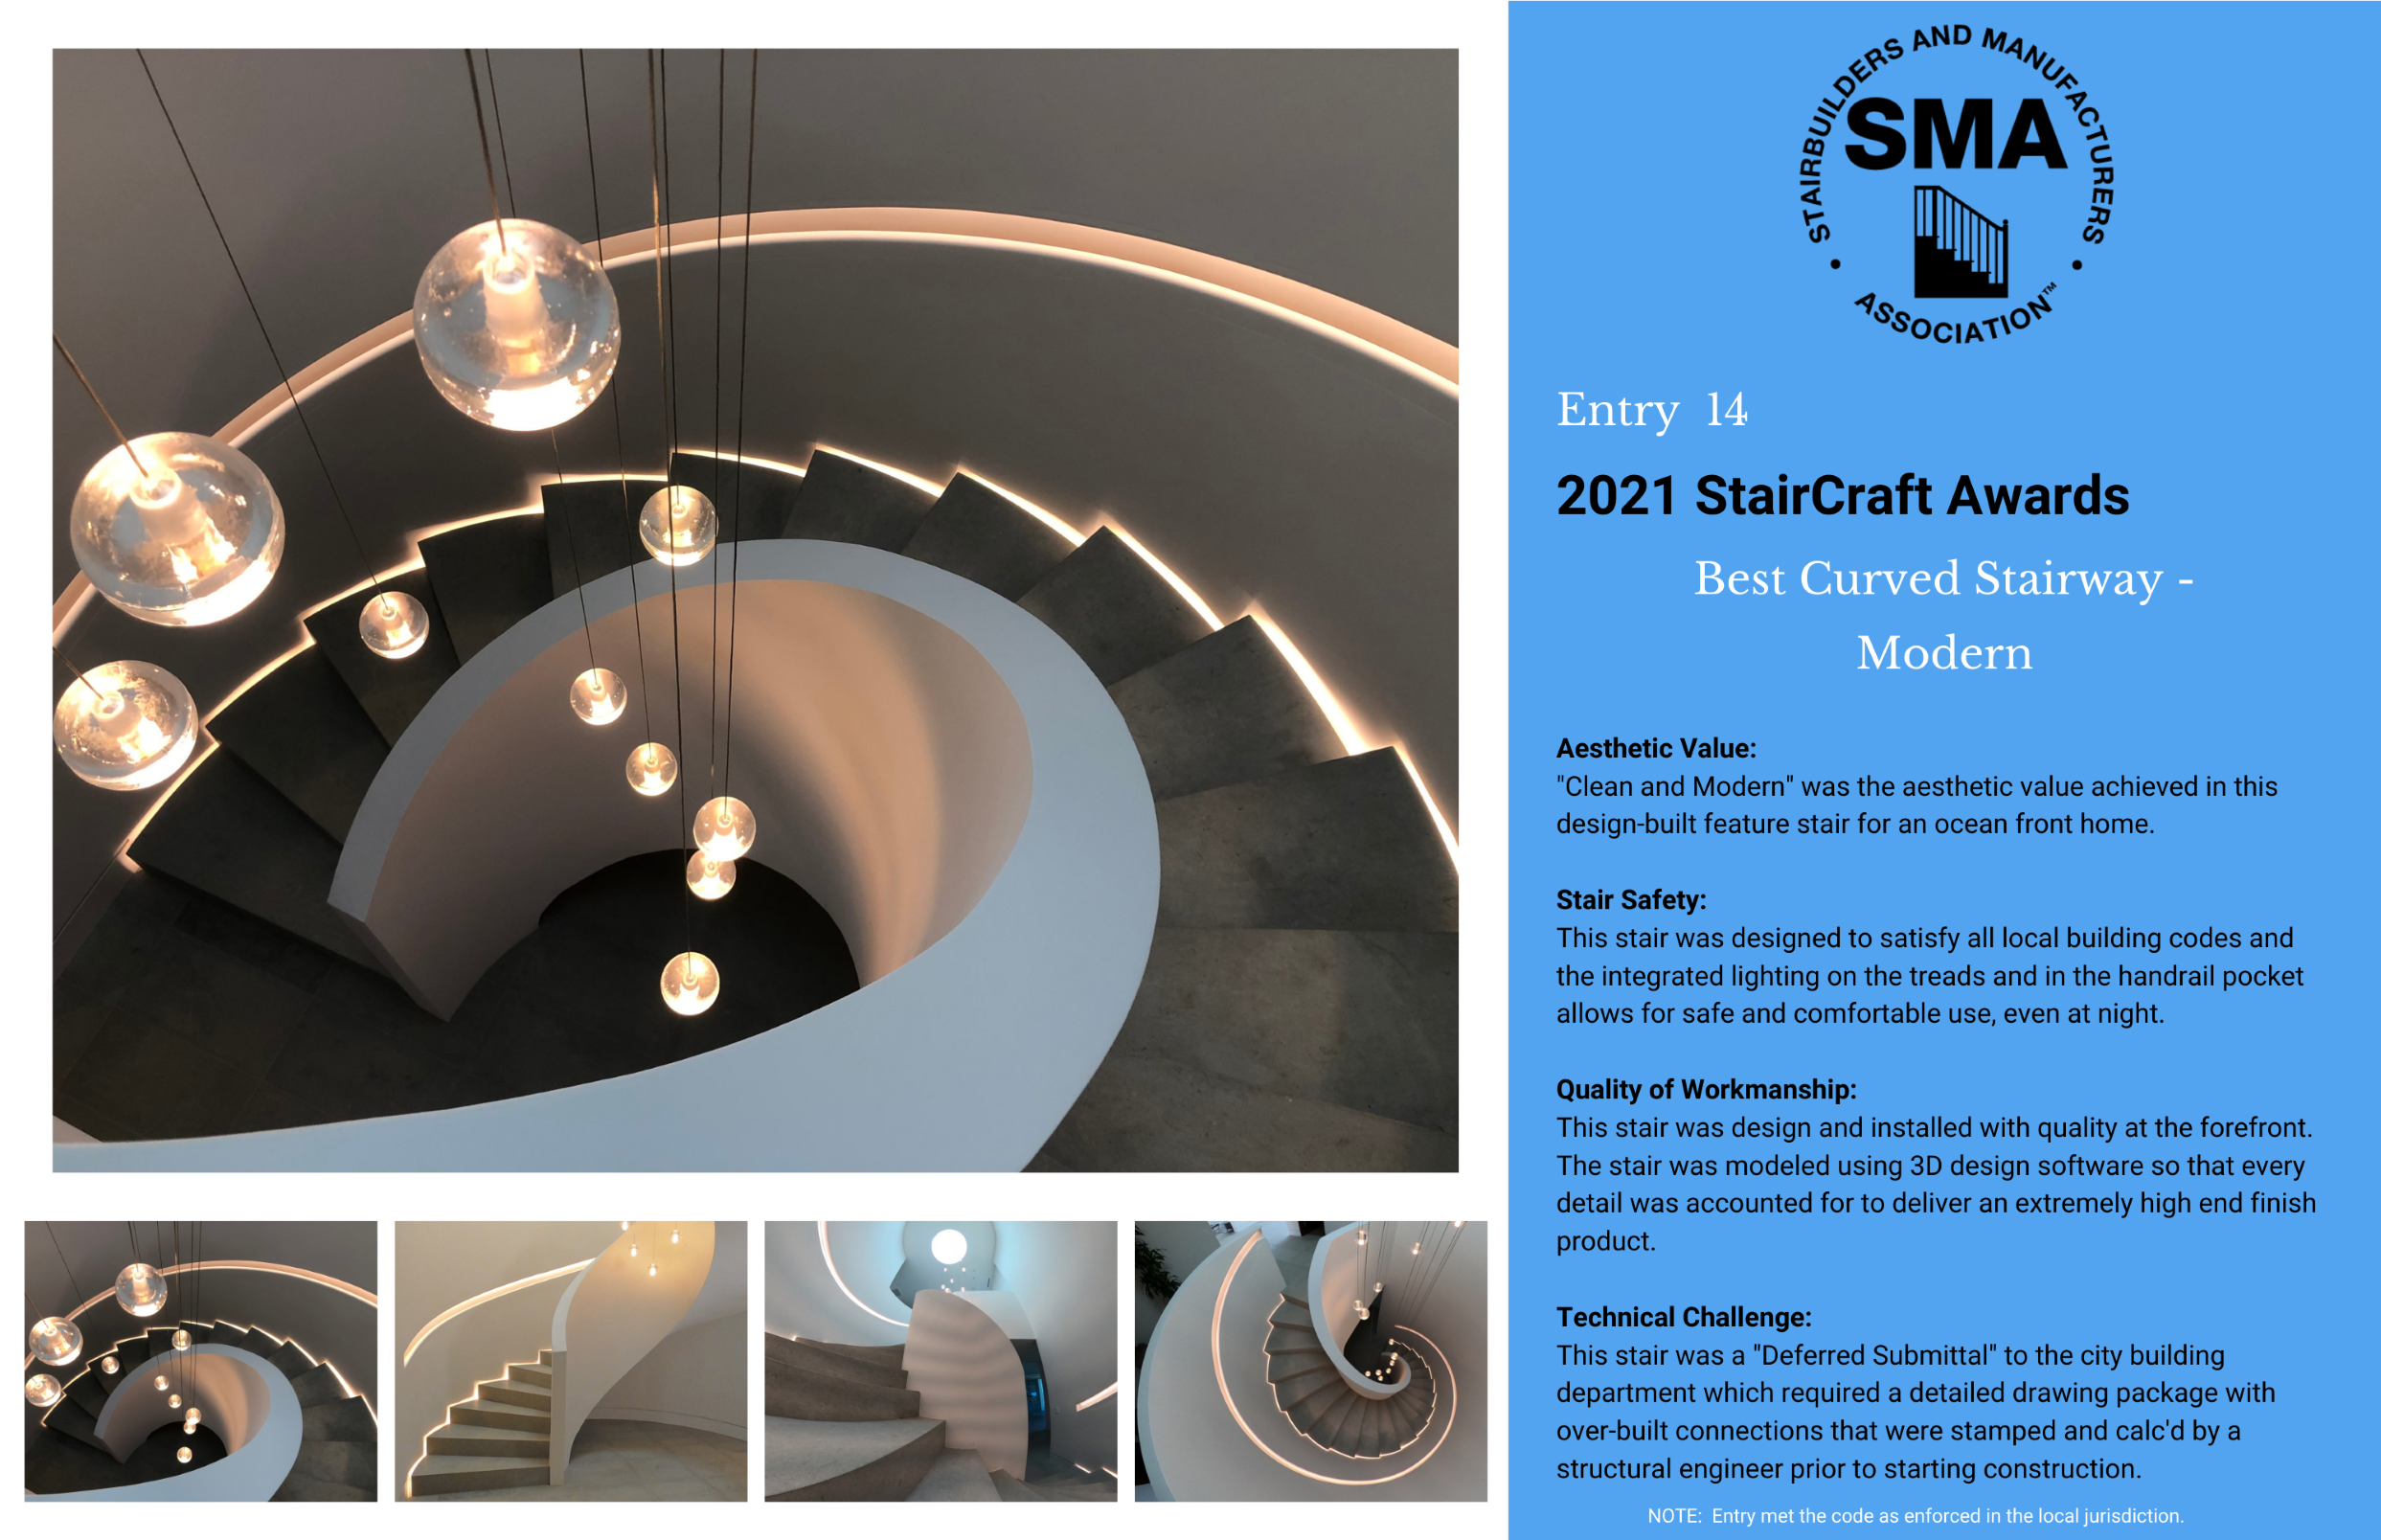 2021 StairCraft Awards Entry 14